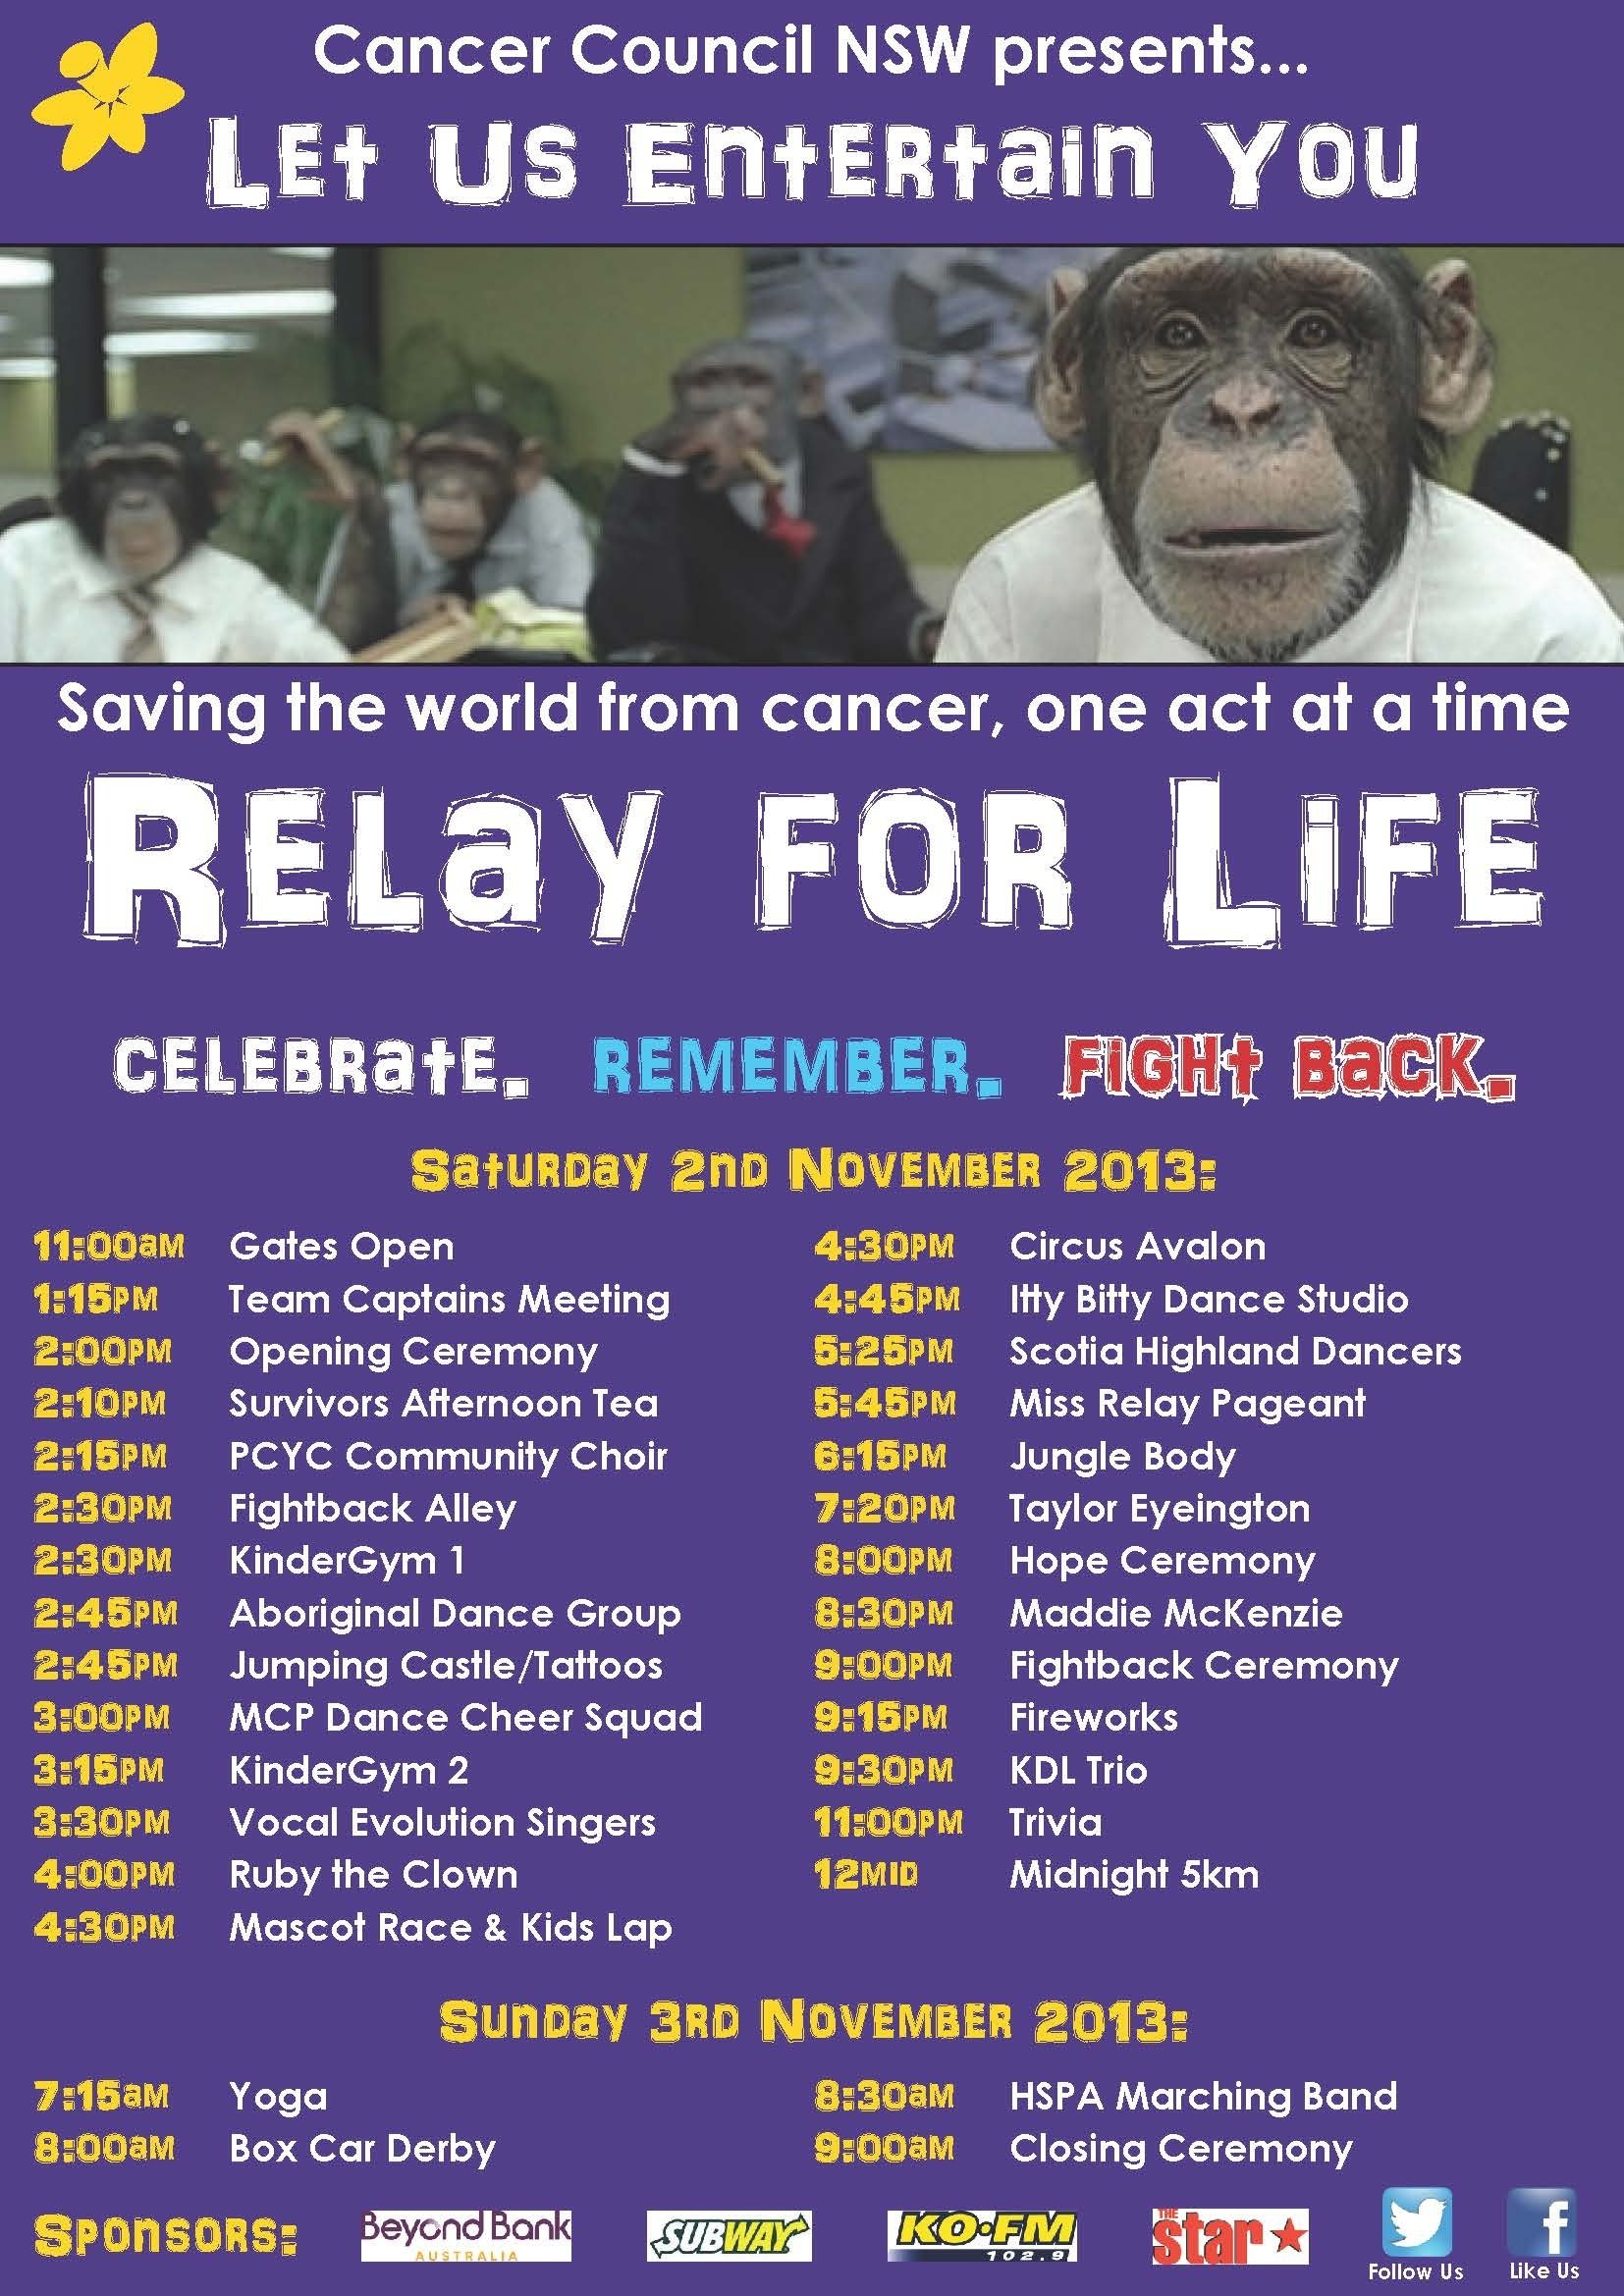 10 Spectacular Relay For Life Lap Ideas newcastle lake macquarie relay for life 2013 let us entertain you